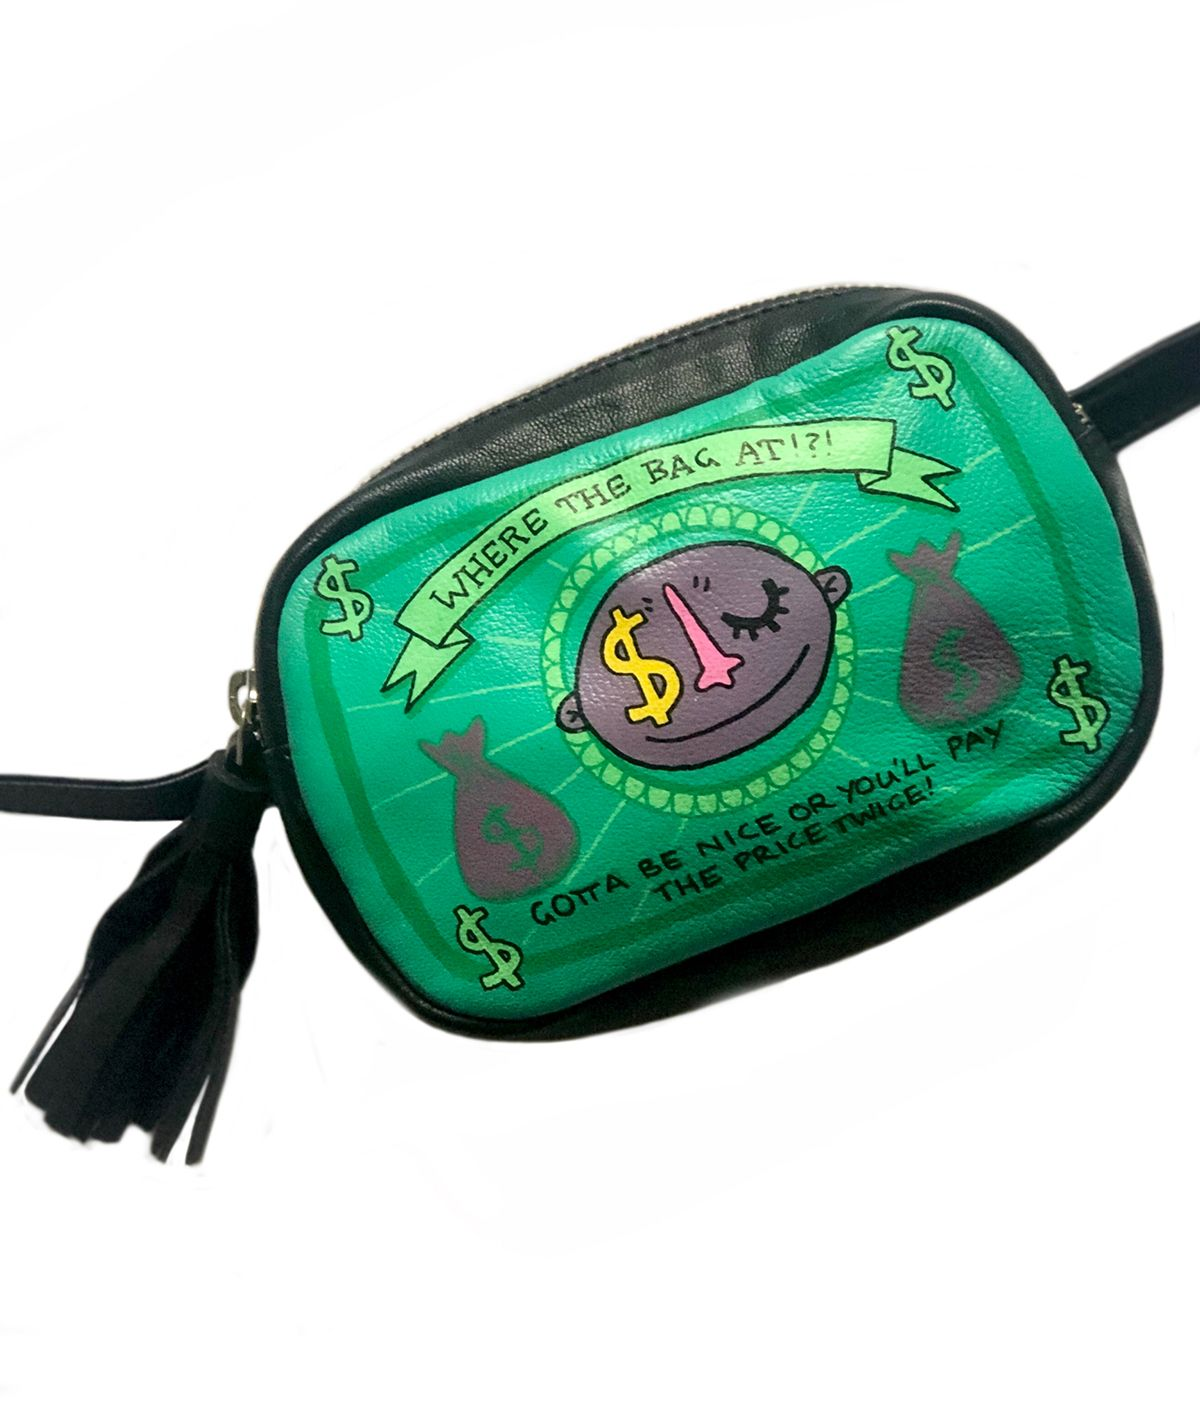 MONEY BAG Crossbody / Bumbag